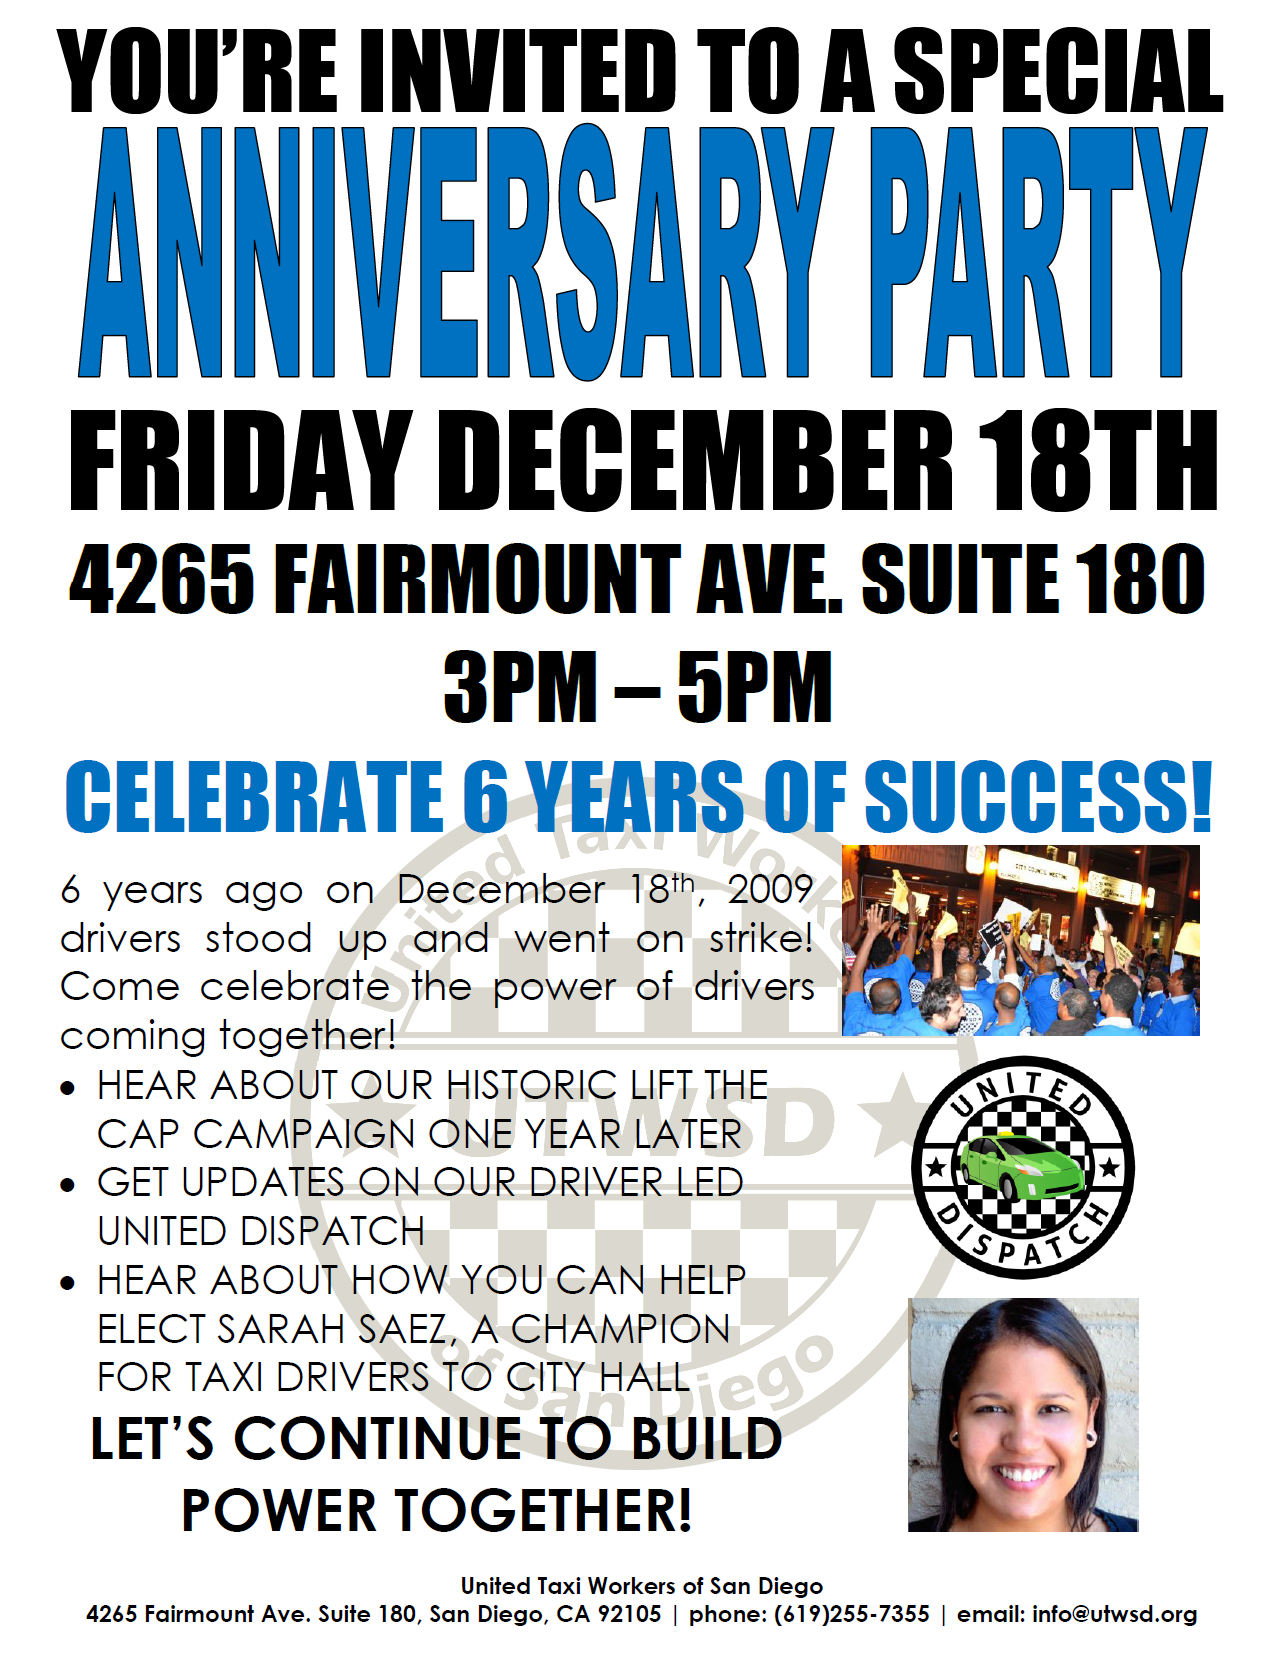 Anniversary Party 12.18.15